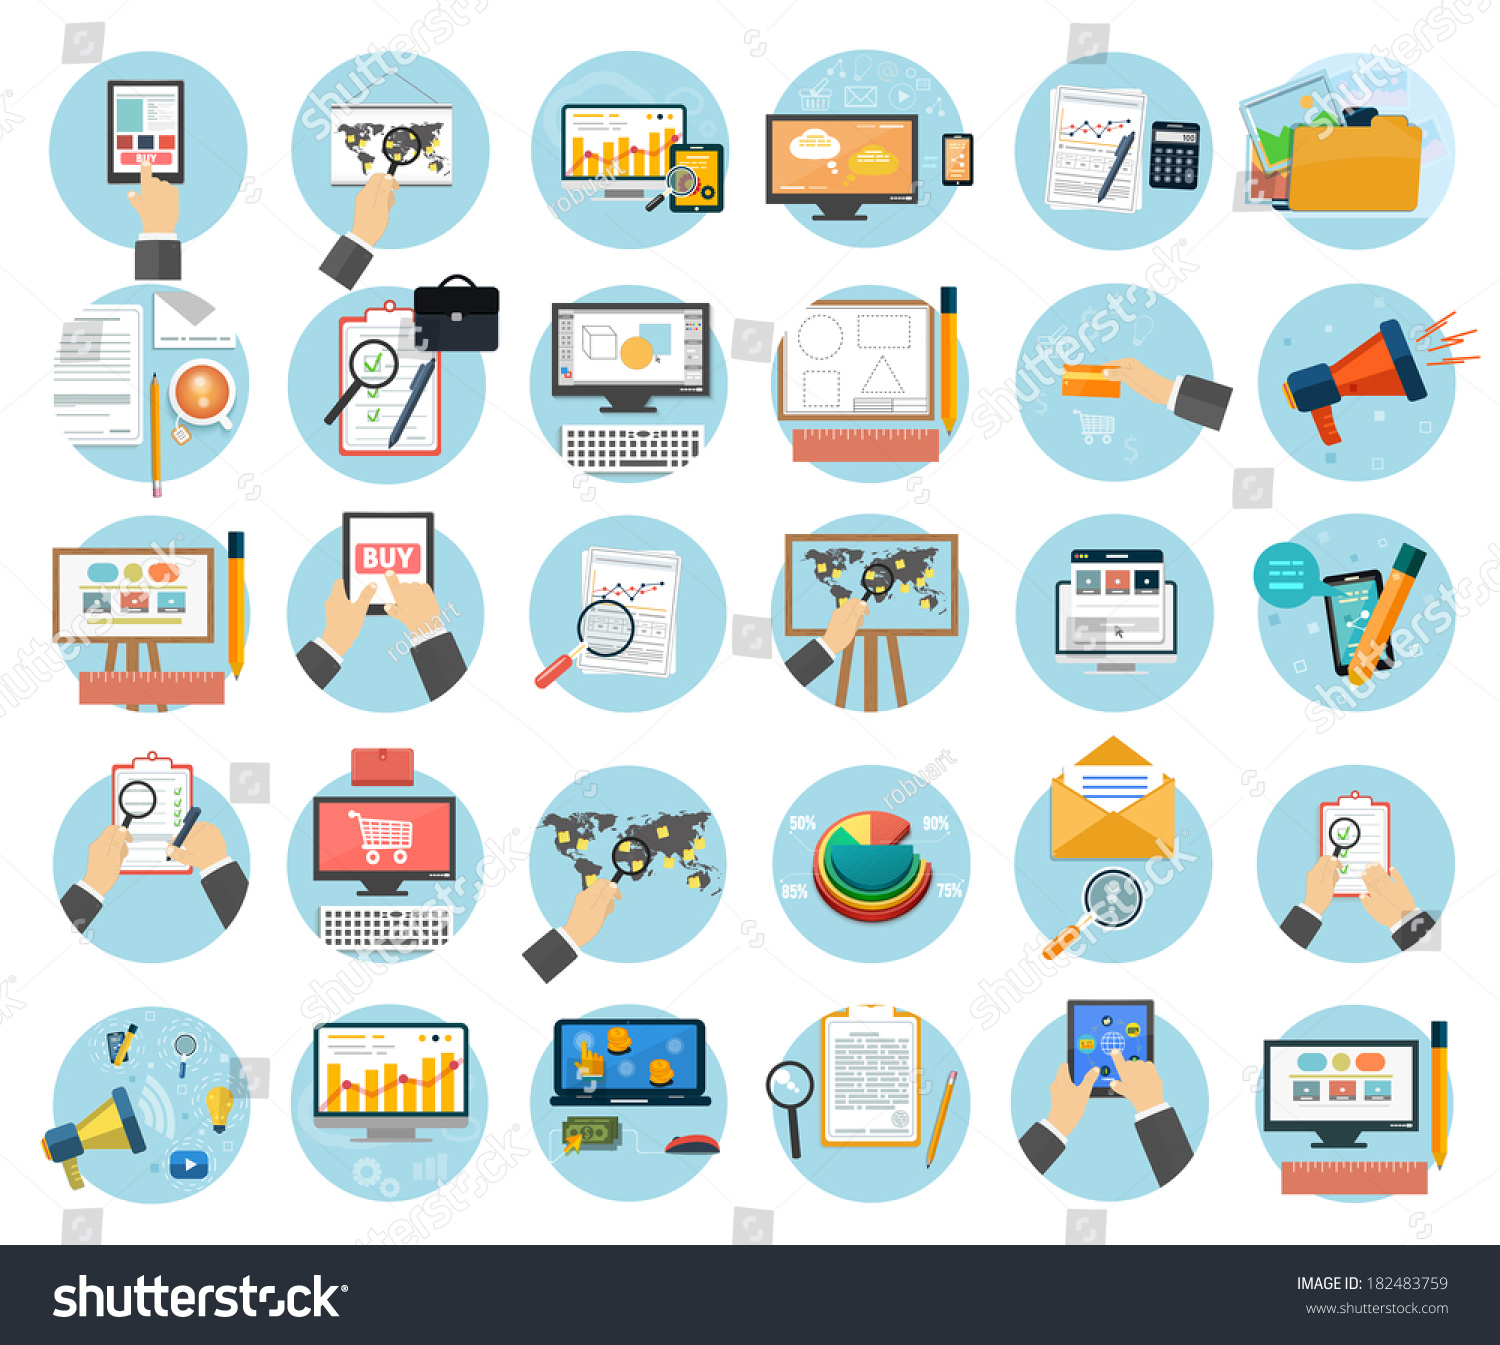 Web design objects business office and marketing items icons stock vector illustration - Object design eigentijds ontwerp ...